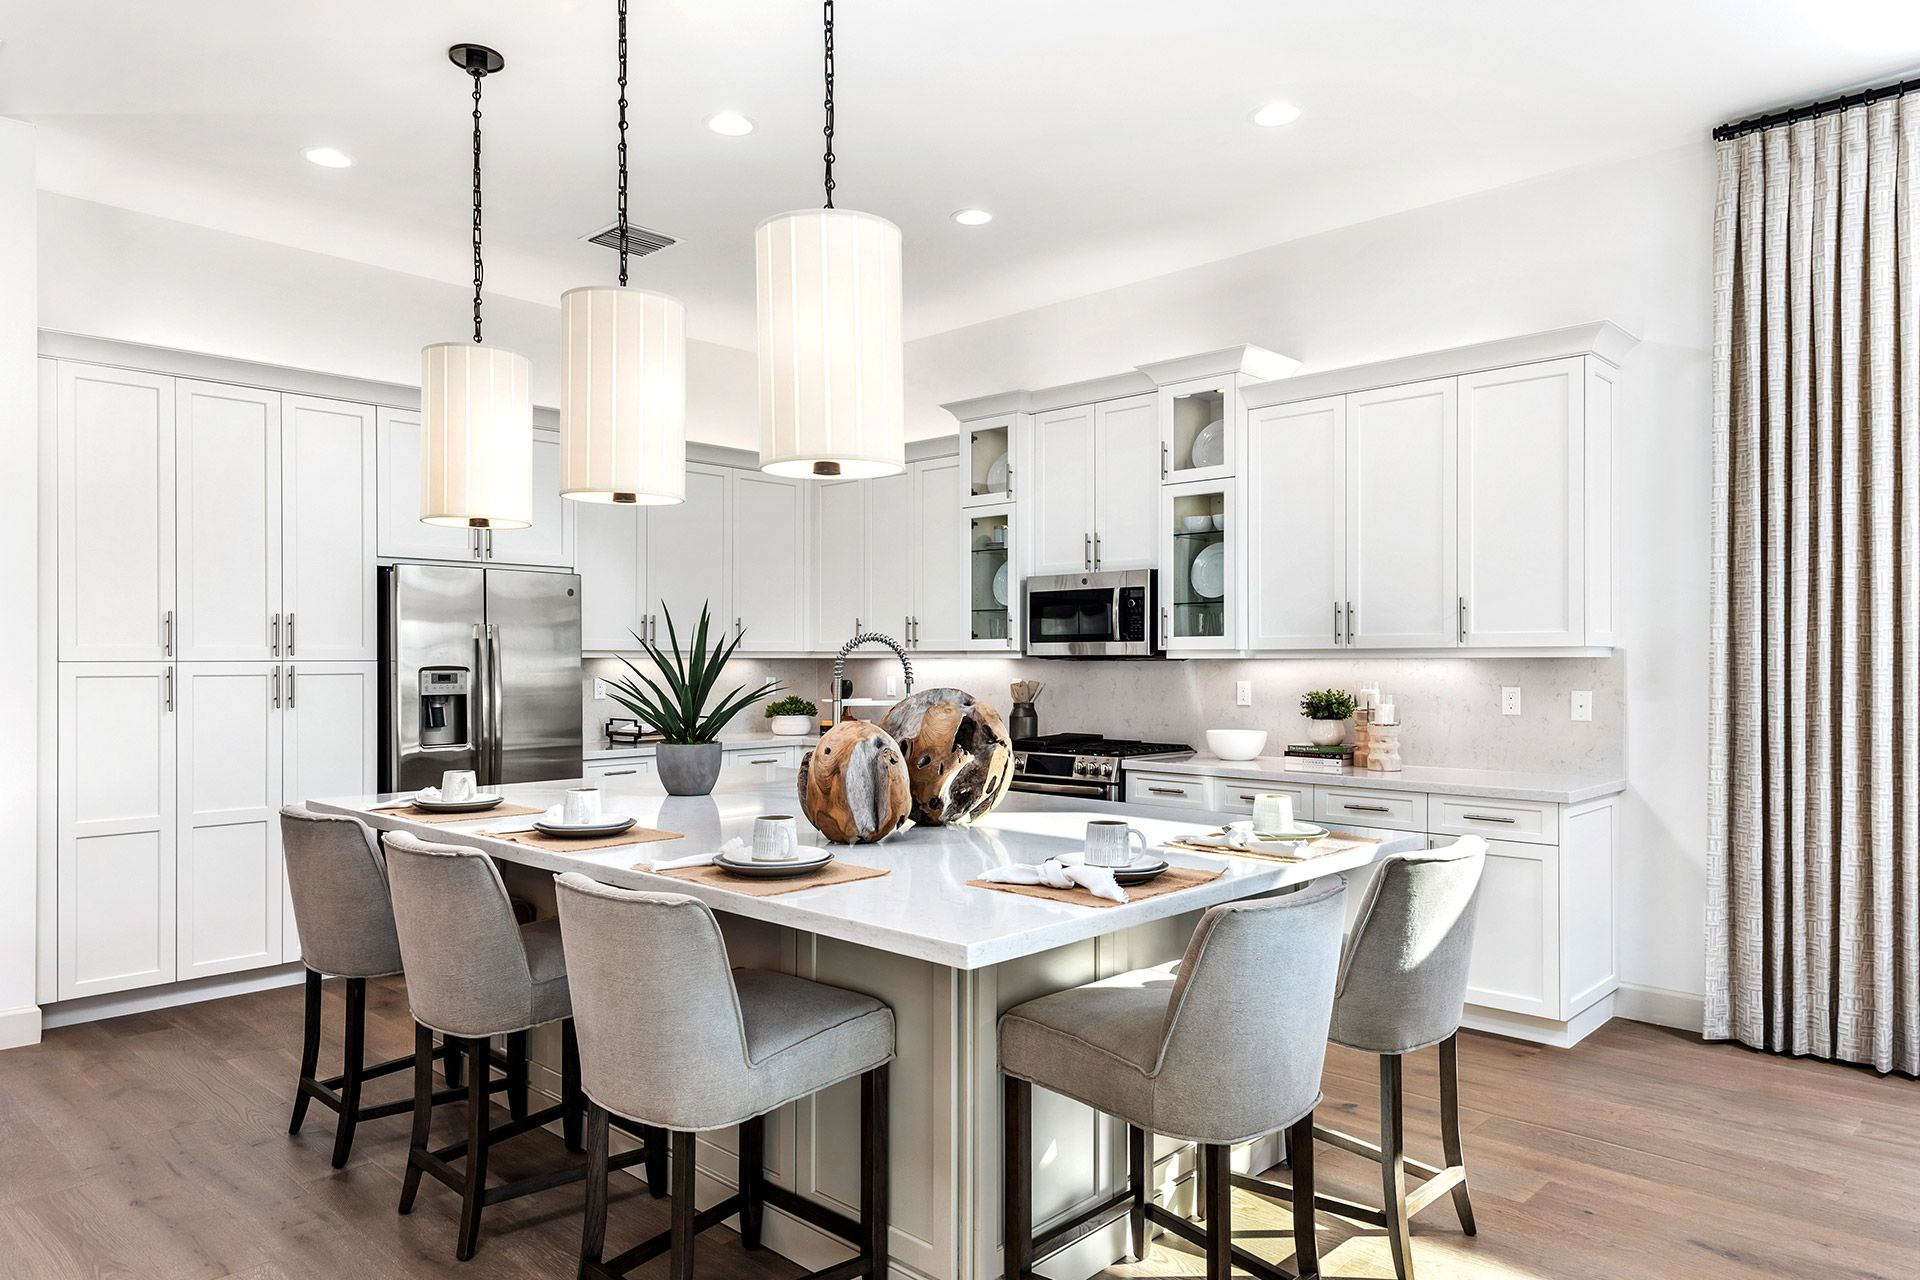 Kitchen featured in the Jade By GL Homes in Palm Beach County, FL